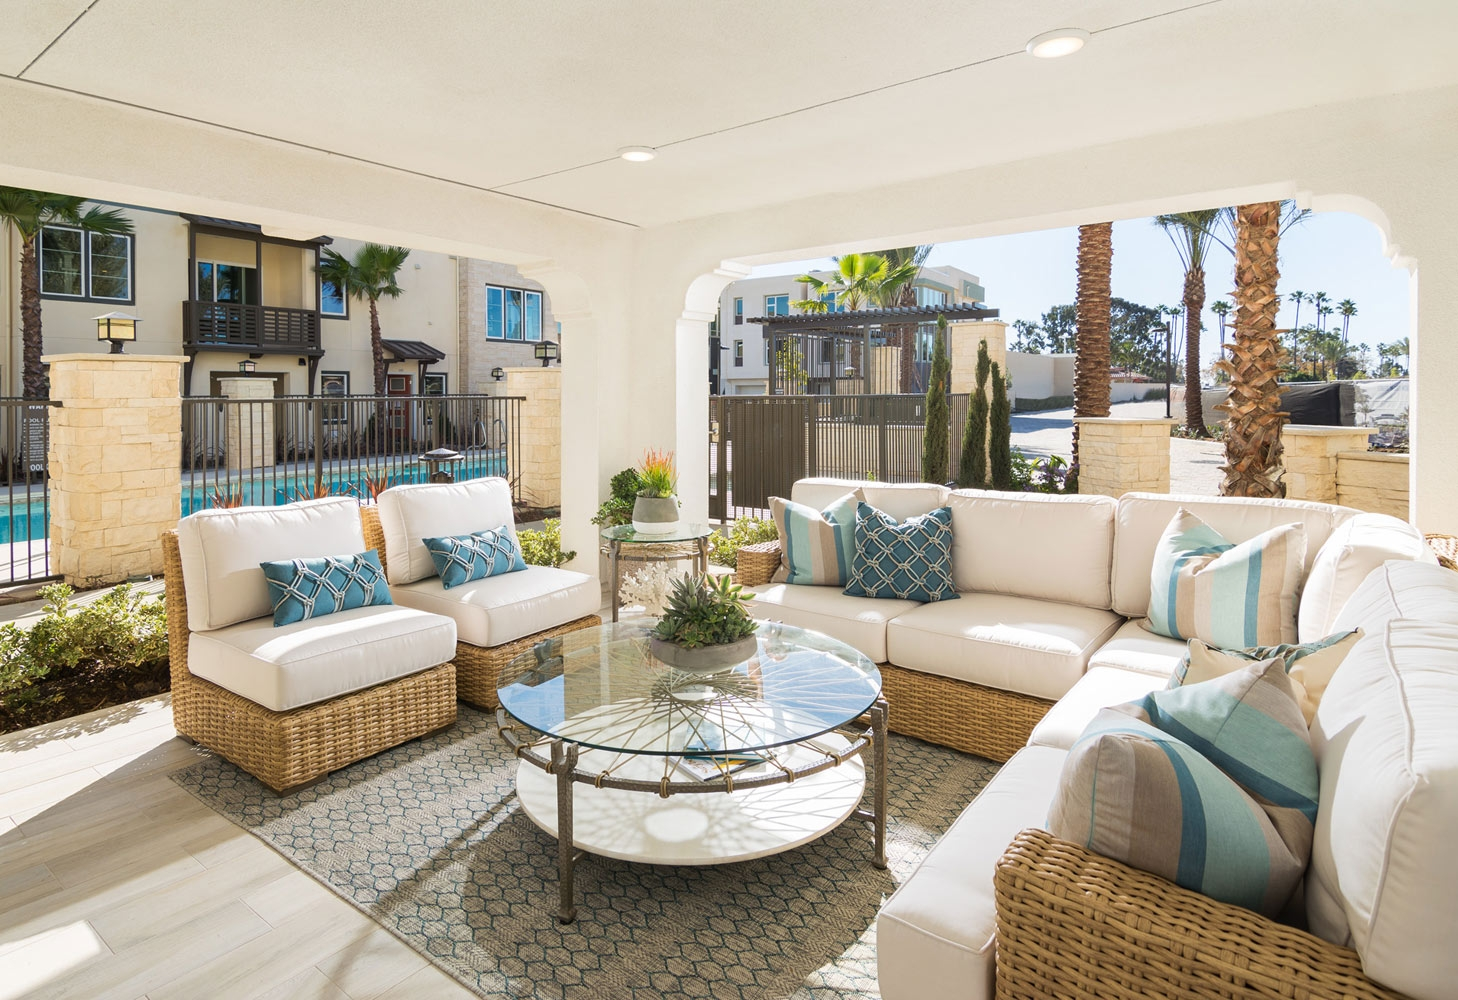 5 Ways to Arrange Your Patio Furniture to Make the Most of Your Backyard This Summer - Today's Patio